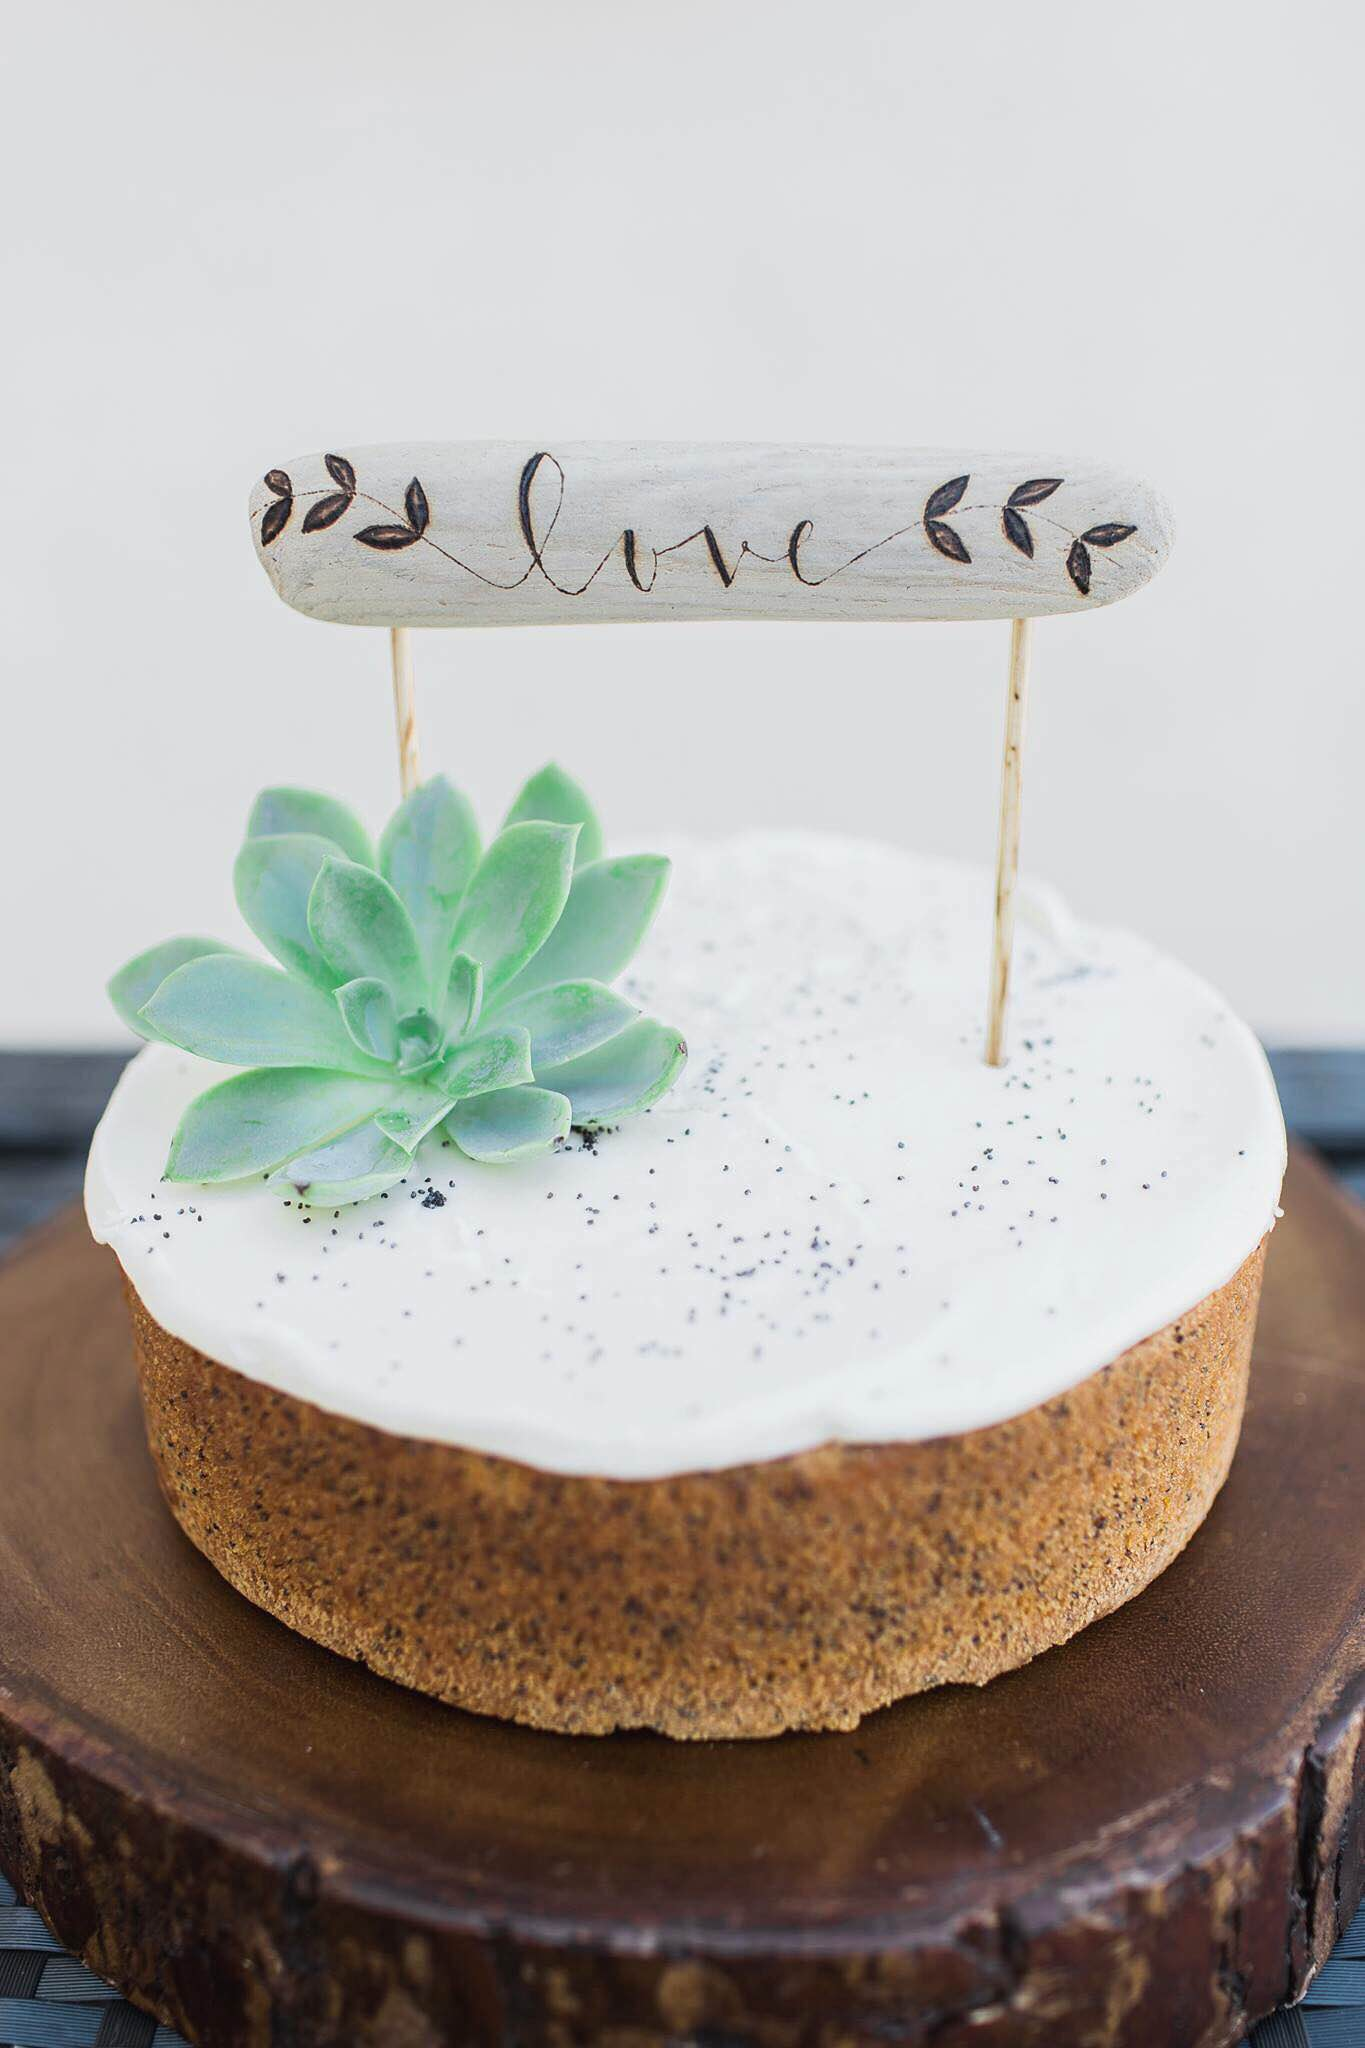 DESIGN & PHOTOGRAPHY: KRISTA MARIE PHOTOGRAPHY  CAKE TOPPER: FIR AND FOREST